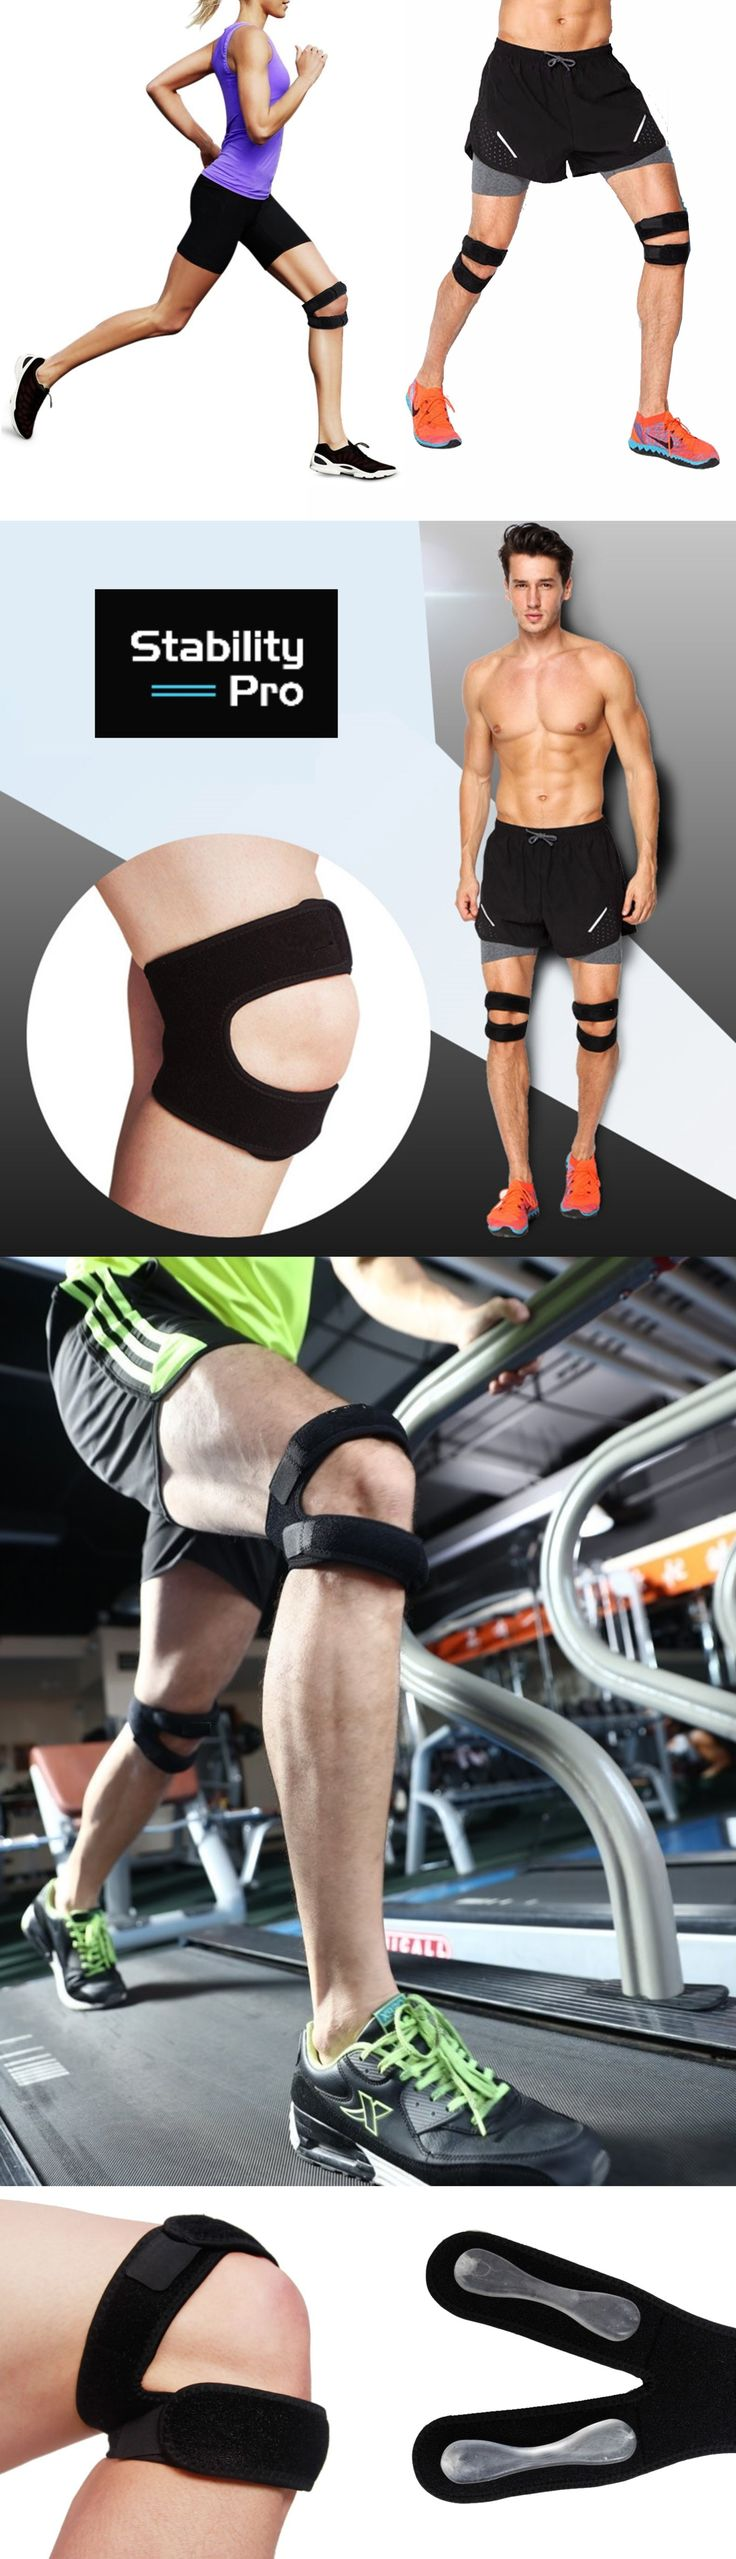 MAXIMUM SUPPORT & MOBILITY - Unique design provides maximum support above and below the kneecap without restricting movement. The ideal product for support to reduce pain and improve mobility so you can keep doing what you love to do!